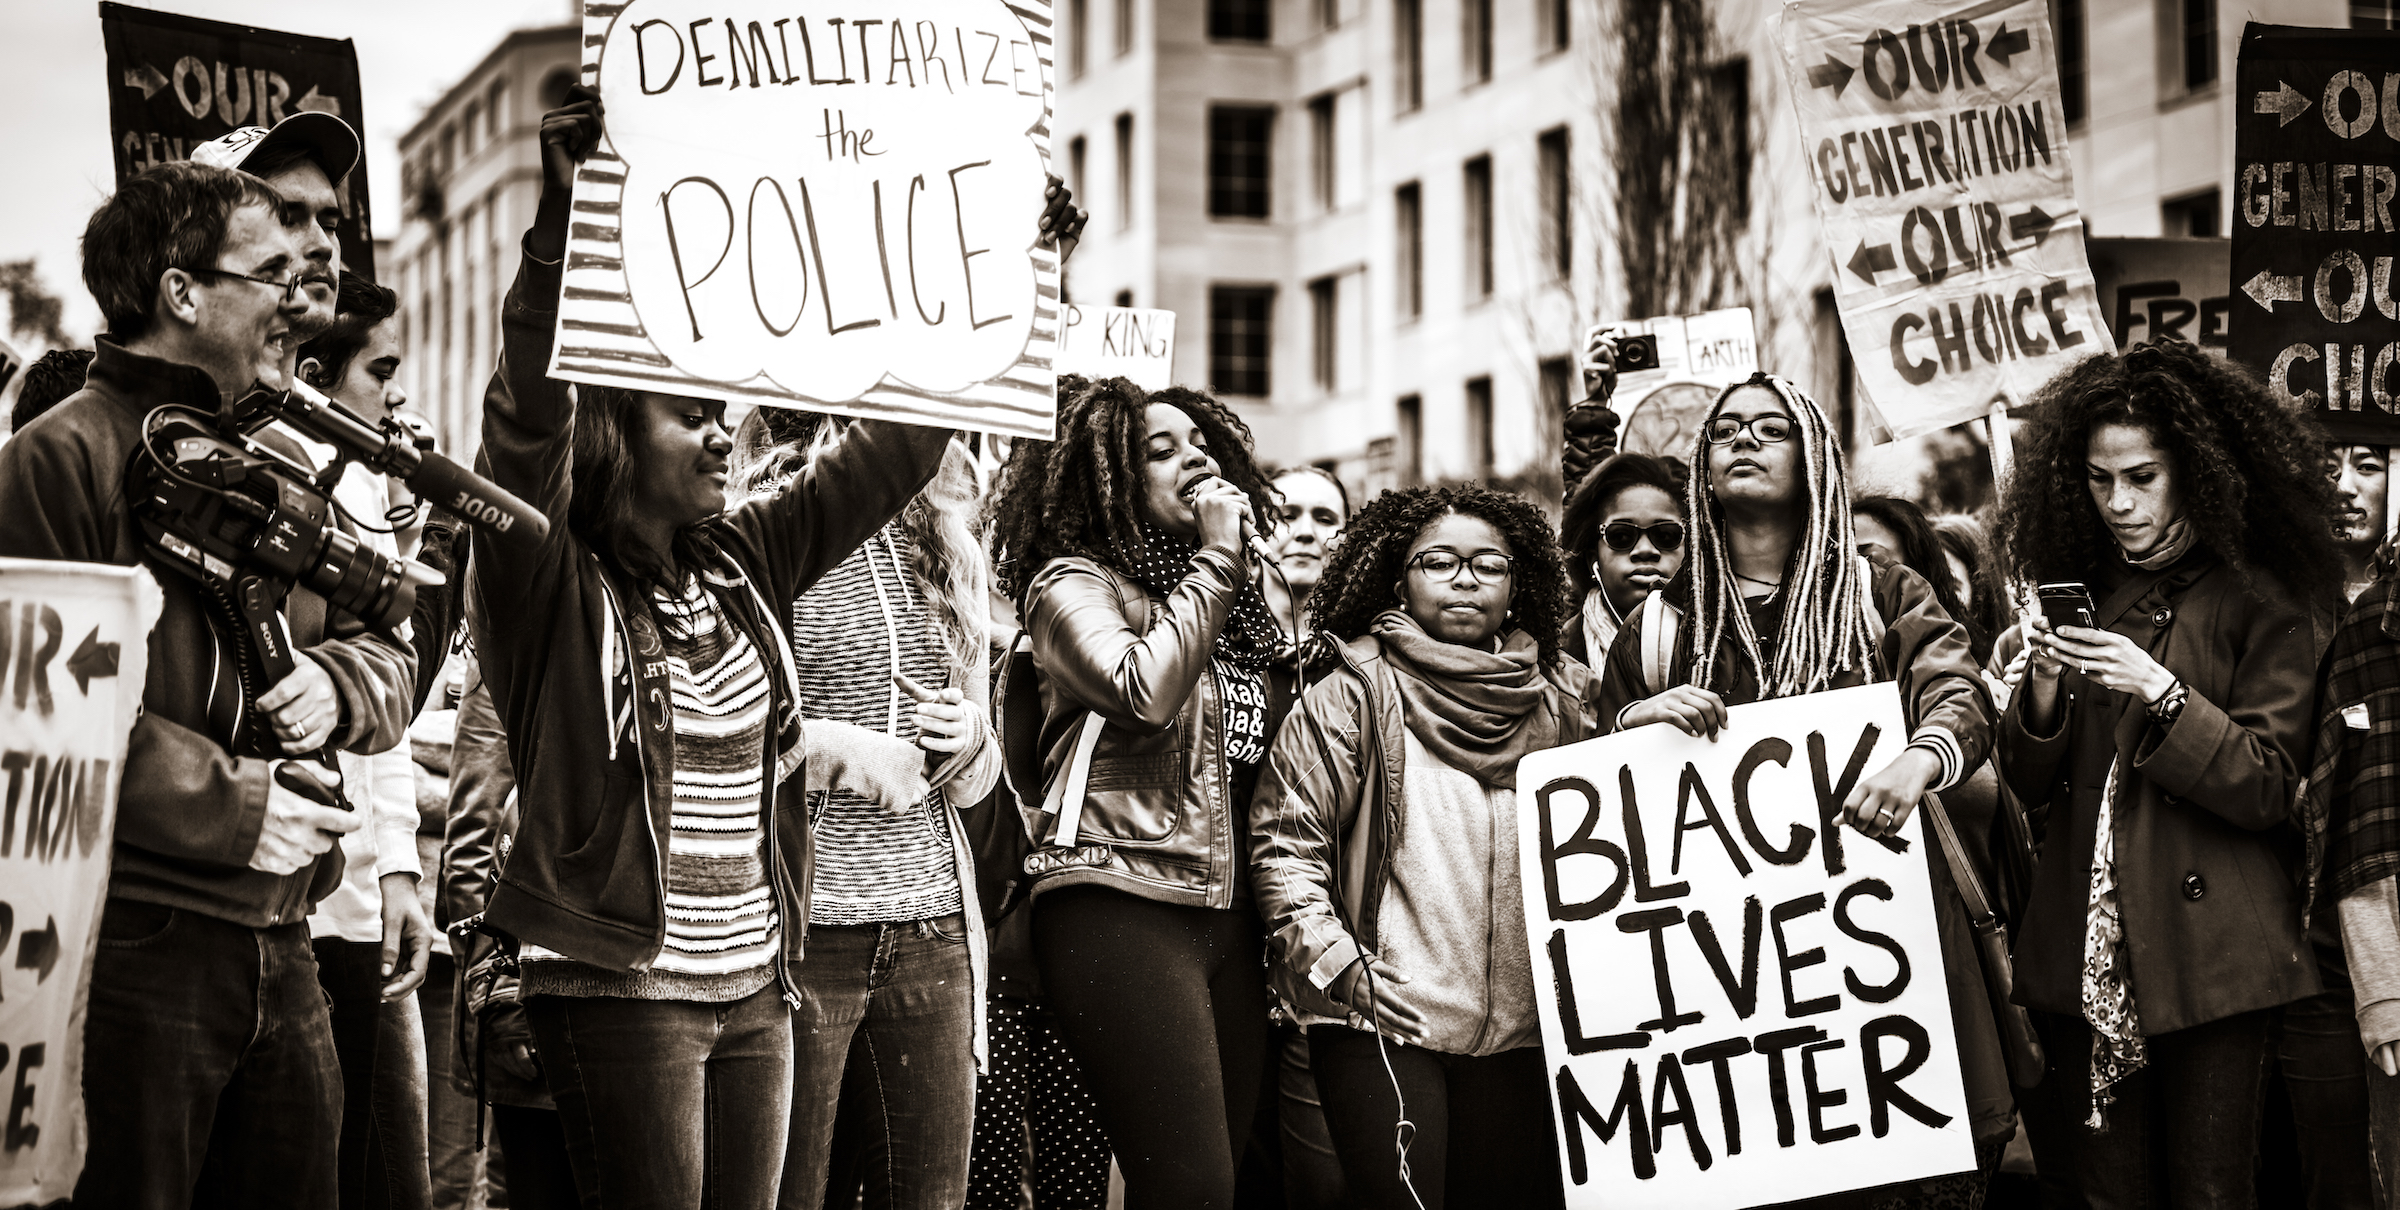 Black Lives Matter demonstrators at a protest hold signs in support of the cause. Photo courtesy of Johnny Silvercloud on Wikimedia Commons.